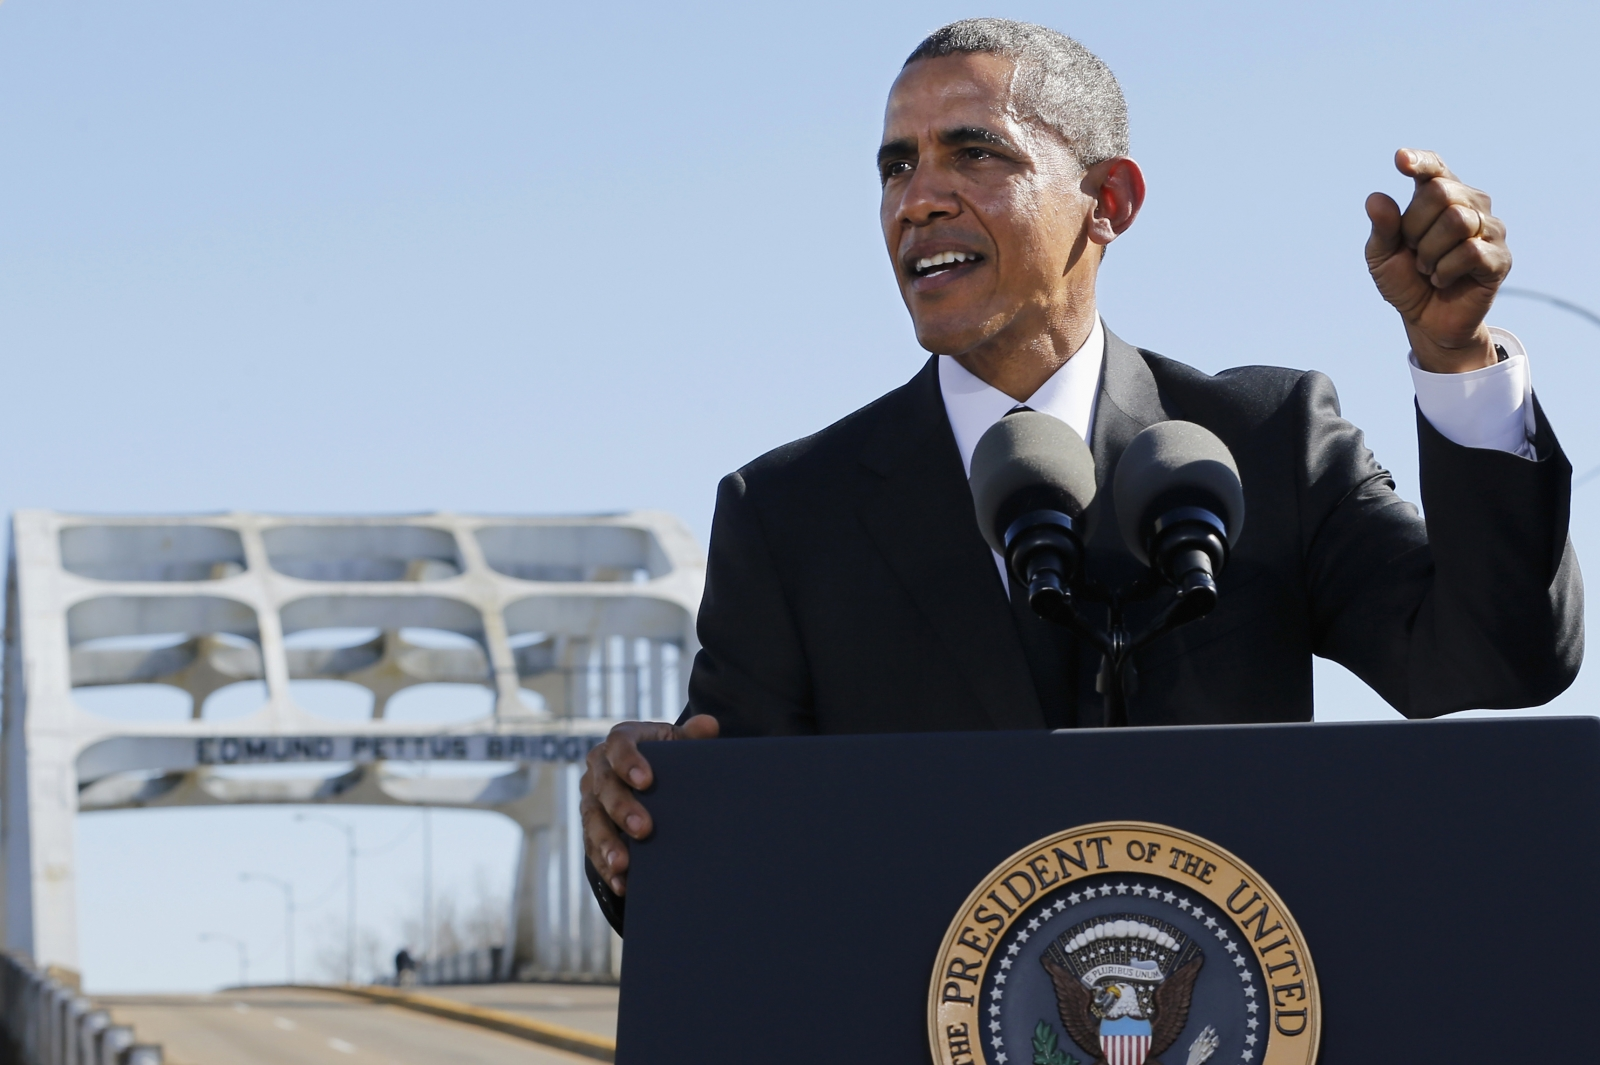 Barack Obama gives speech at Selma